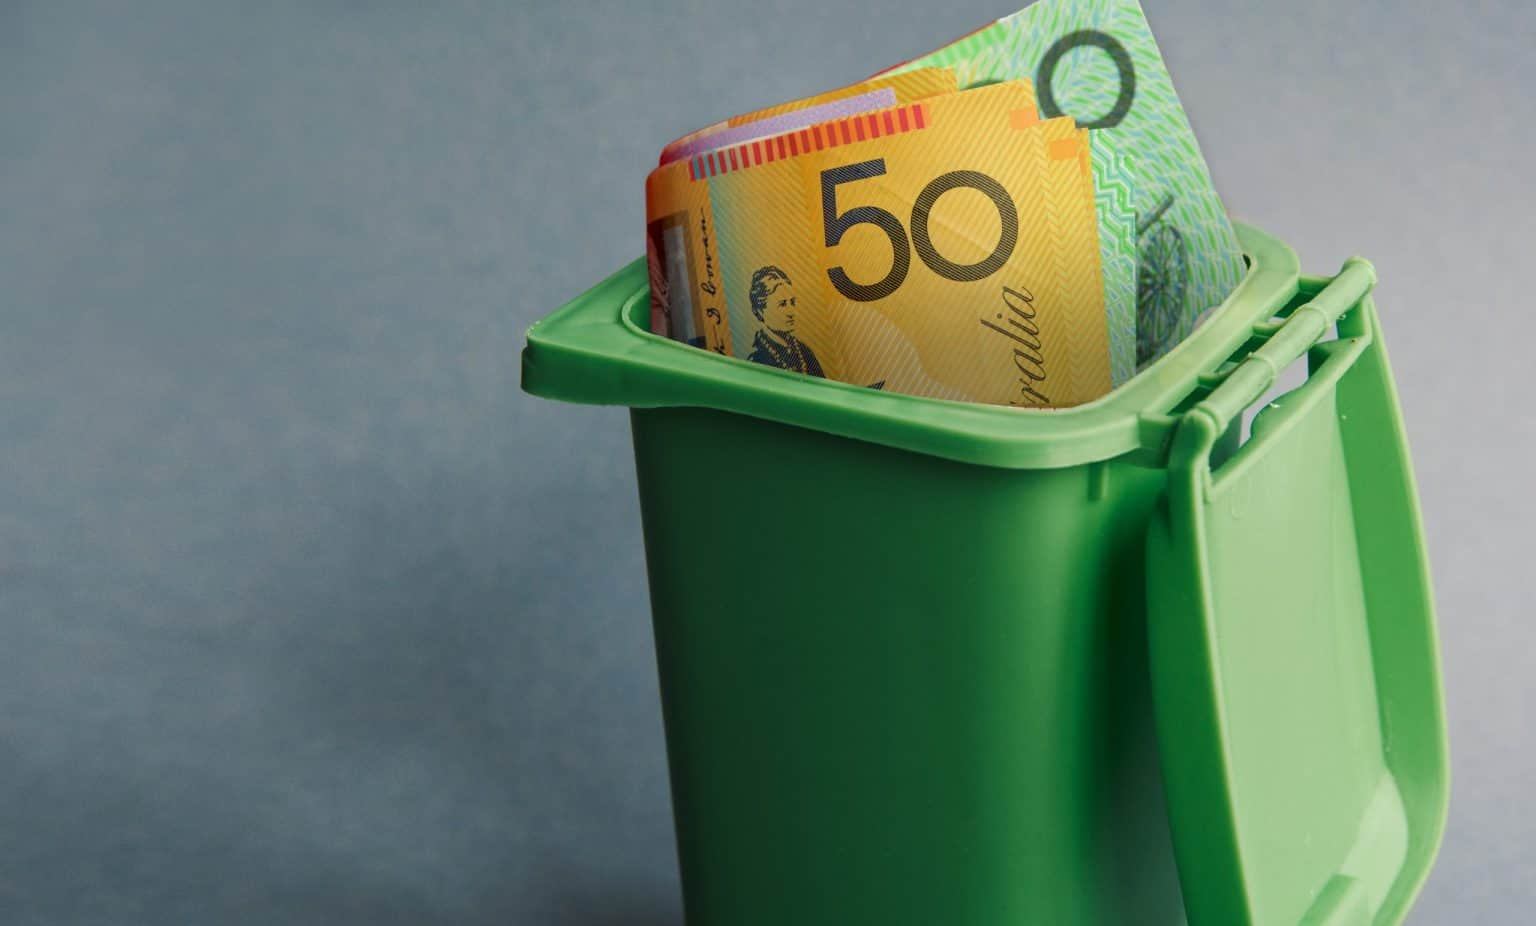 Was the Royal Commission into misconduct in the banking, superannuation and financial services industry a billion-dollar waste of time?